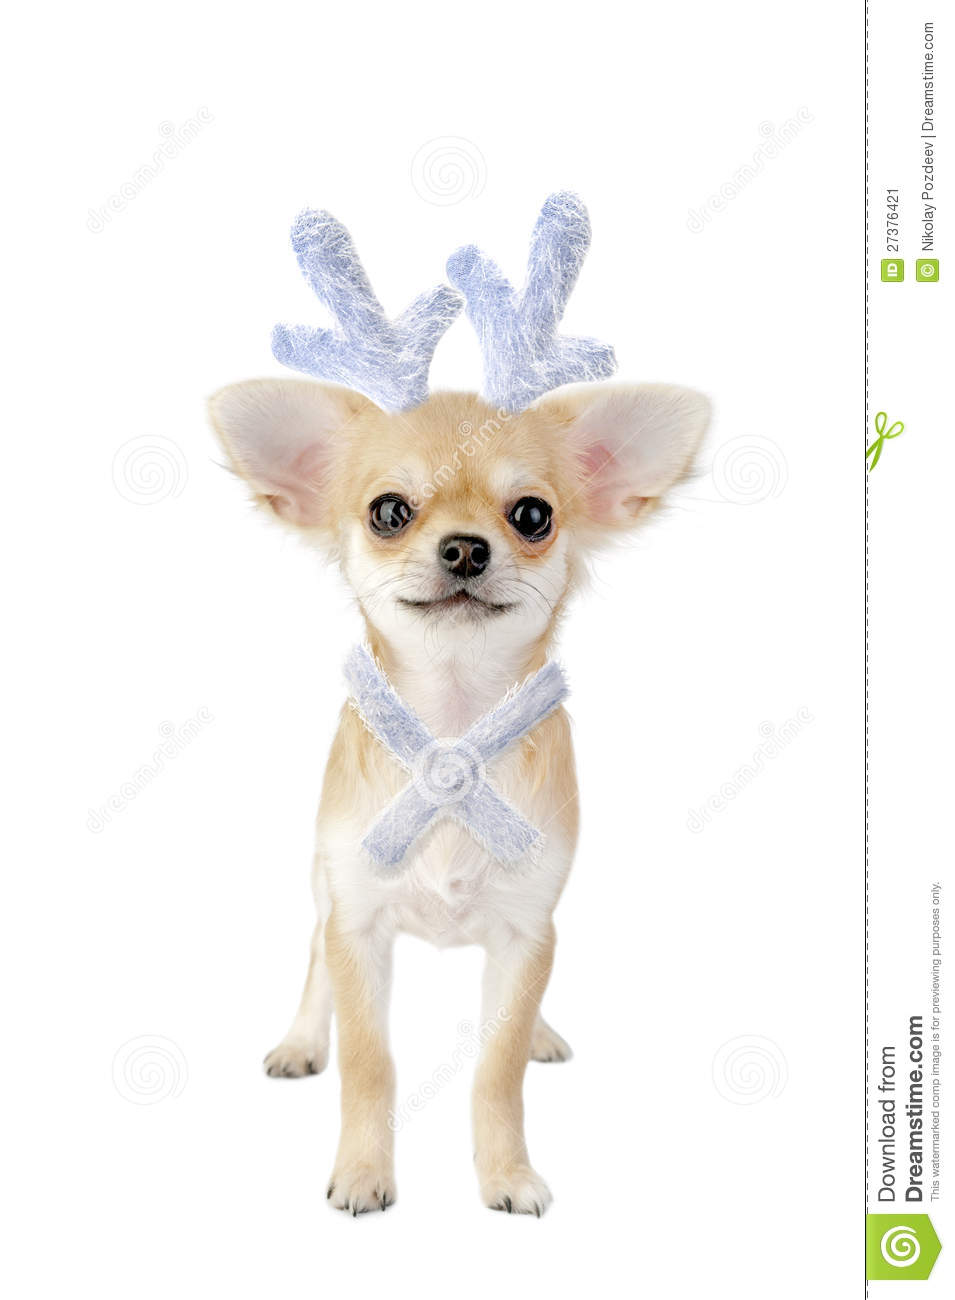 Chihuahua Puppy With Antlers As Christmas Reindeer Stock Image